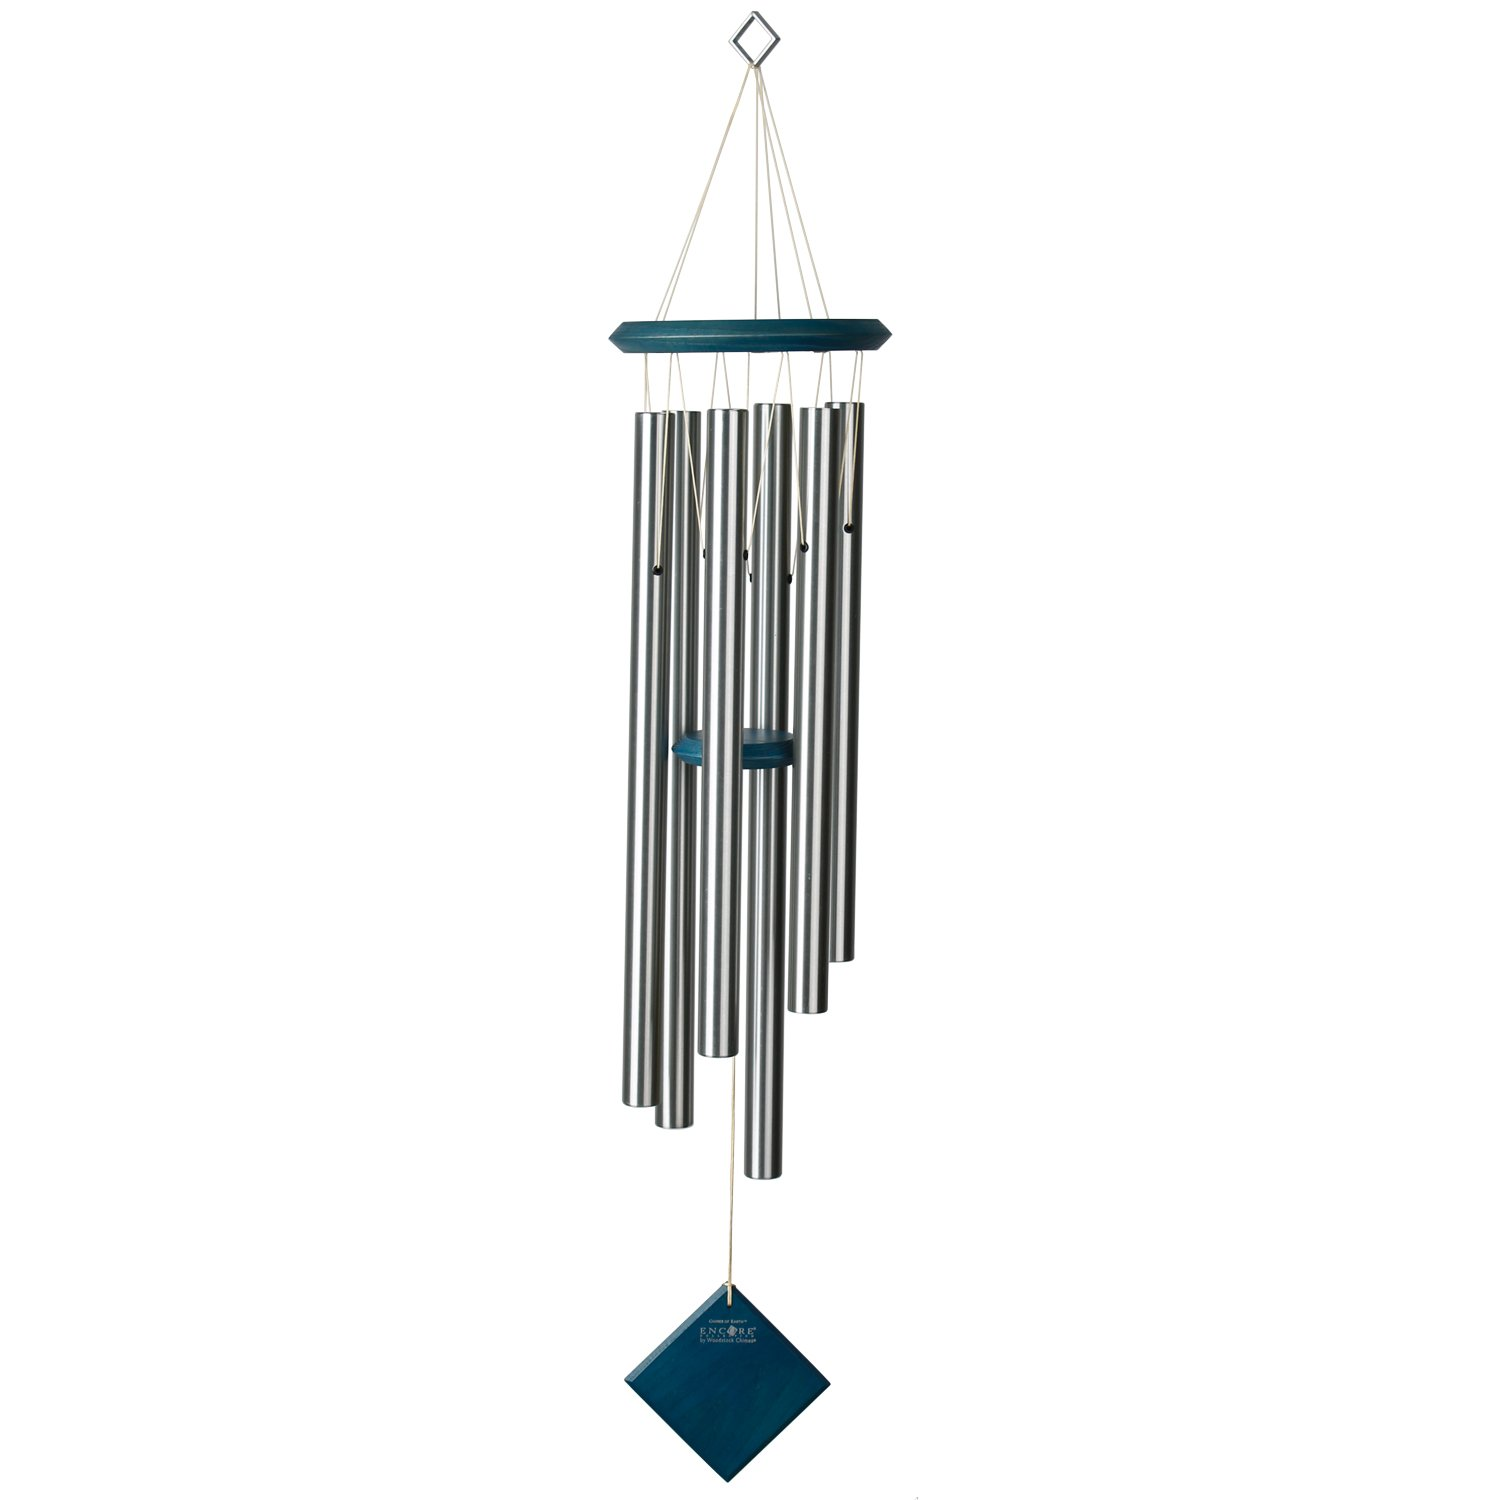 Encore Collection by Woodstock Chimes - The ORIGINAL Guaranteed Musically Tuned Chime, Chimes of Earth - Blue Wash by Woodstock Chimes